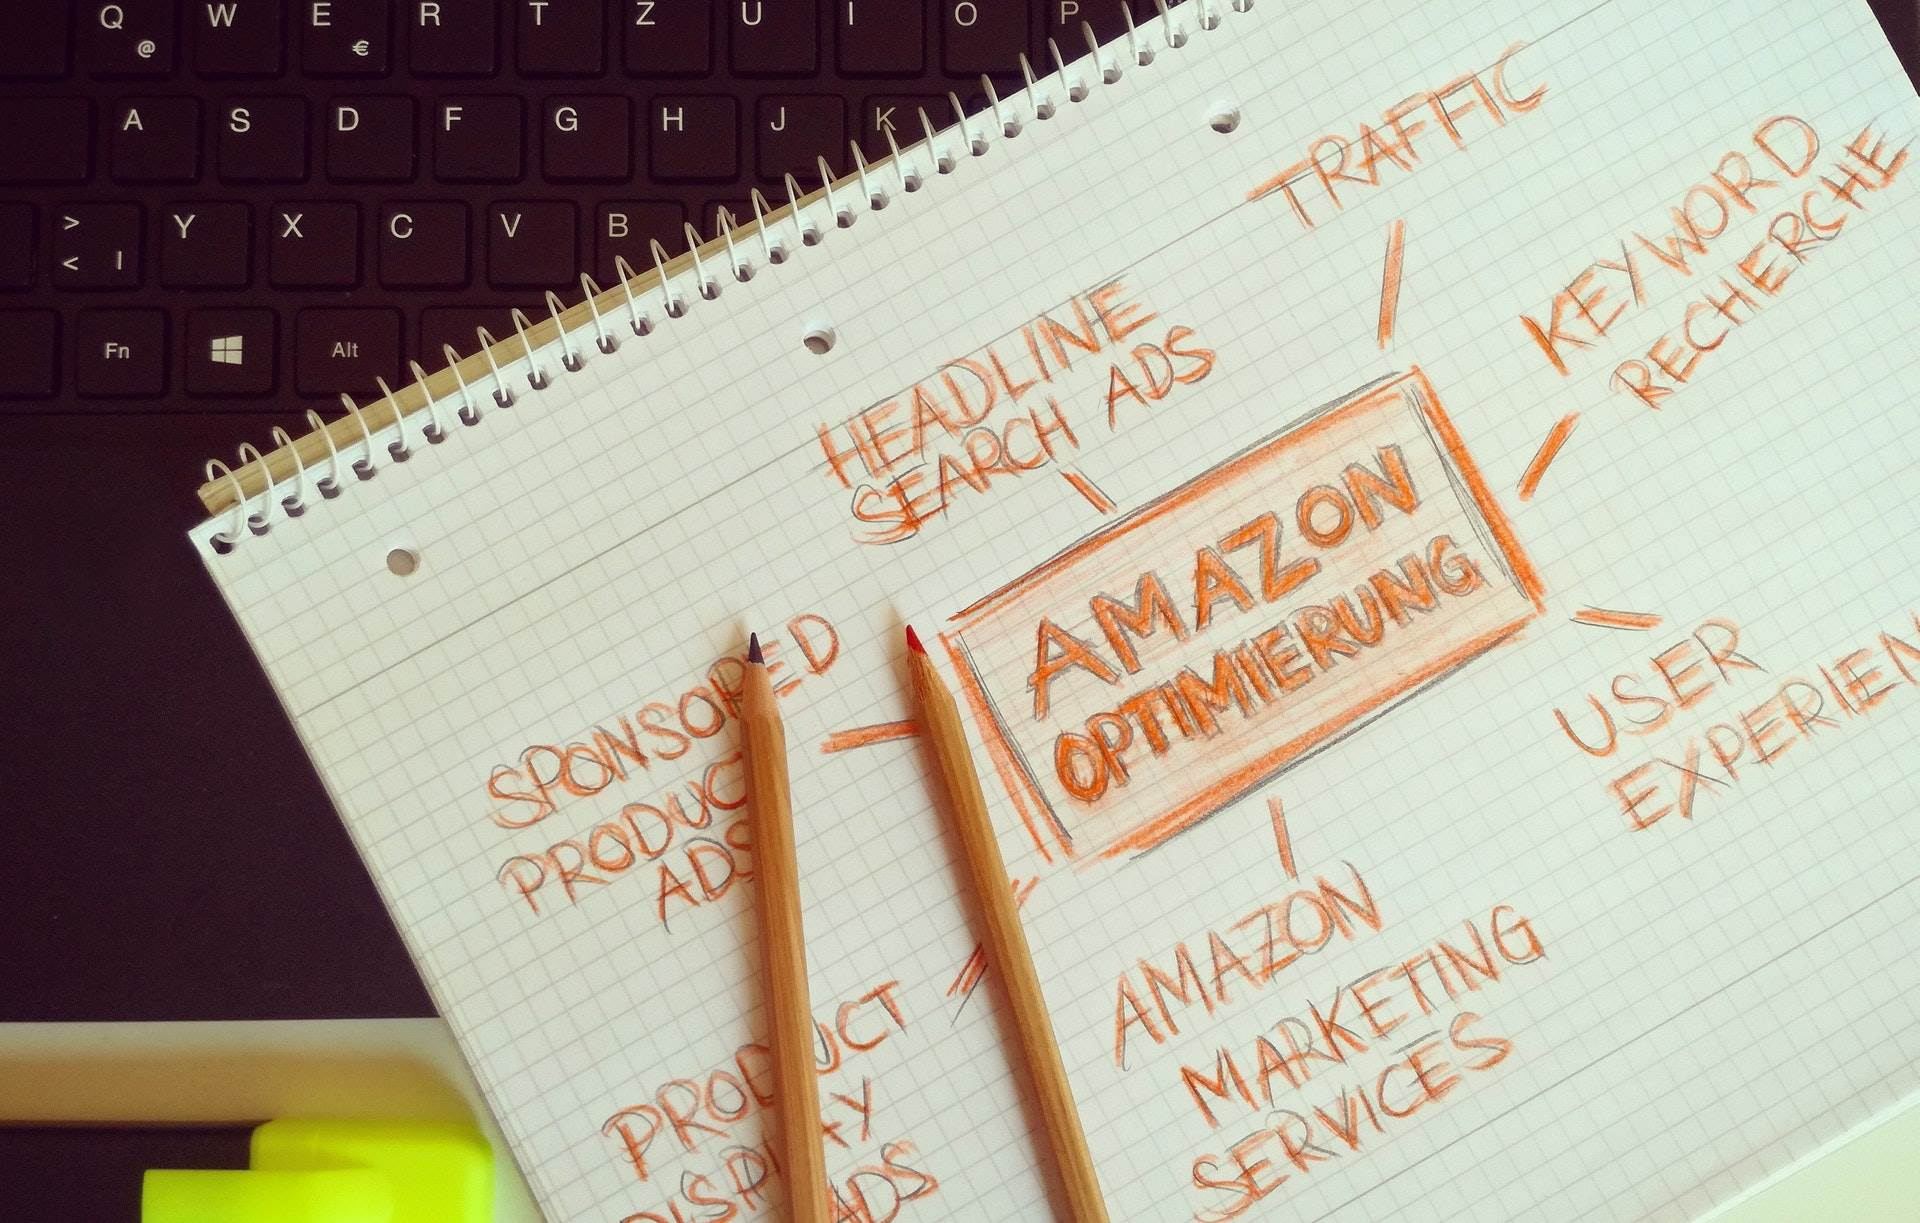 5 Steps to Setting Up and Maintaining an Amazon Seller Account